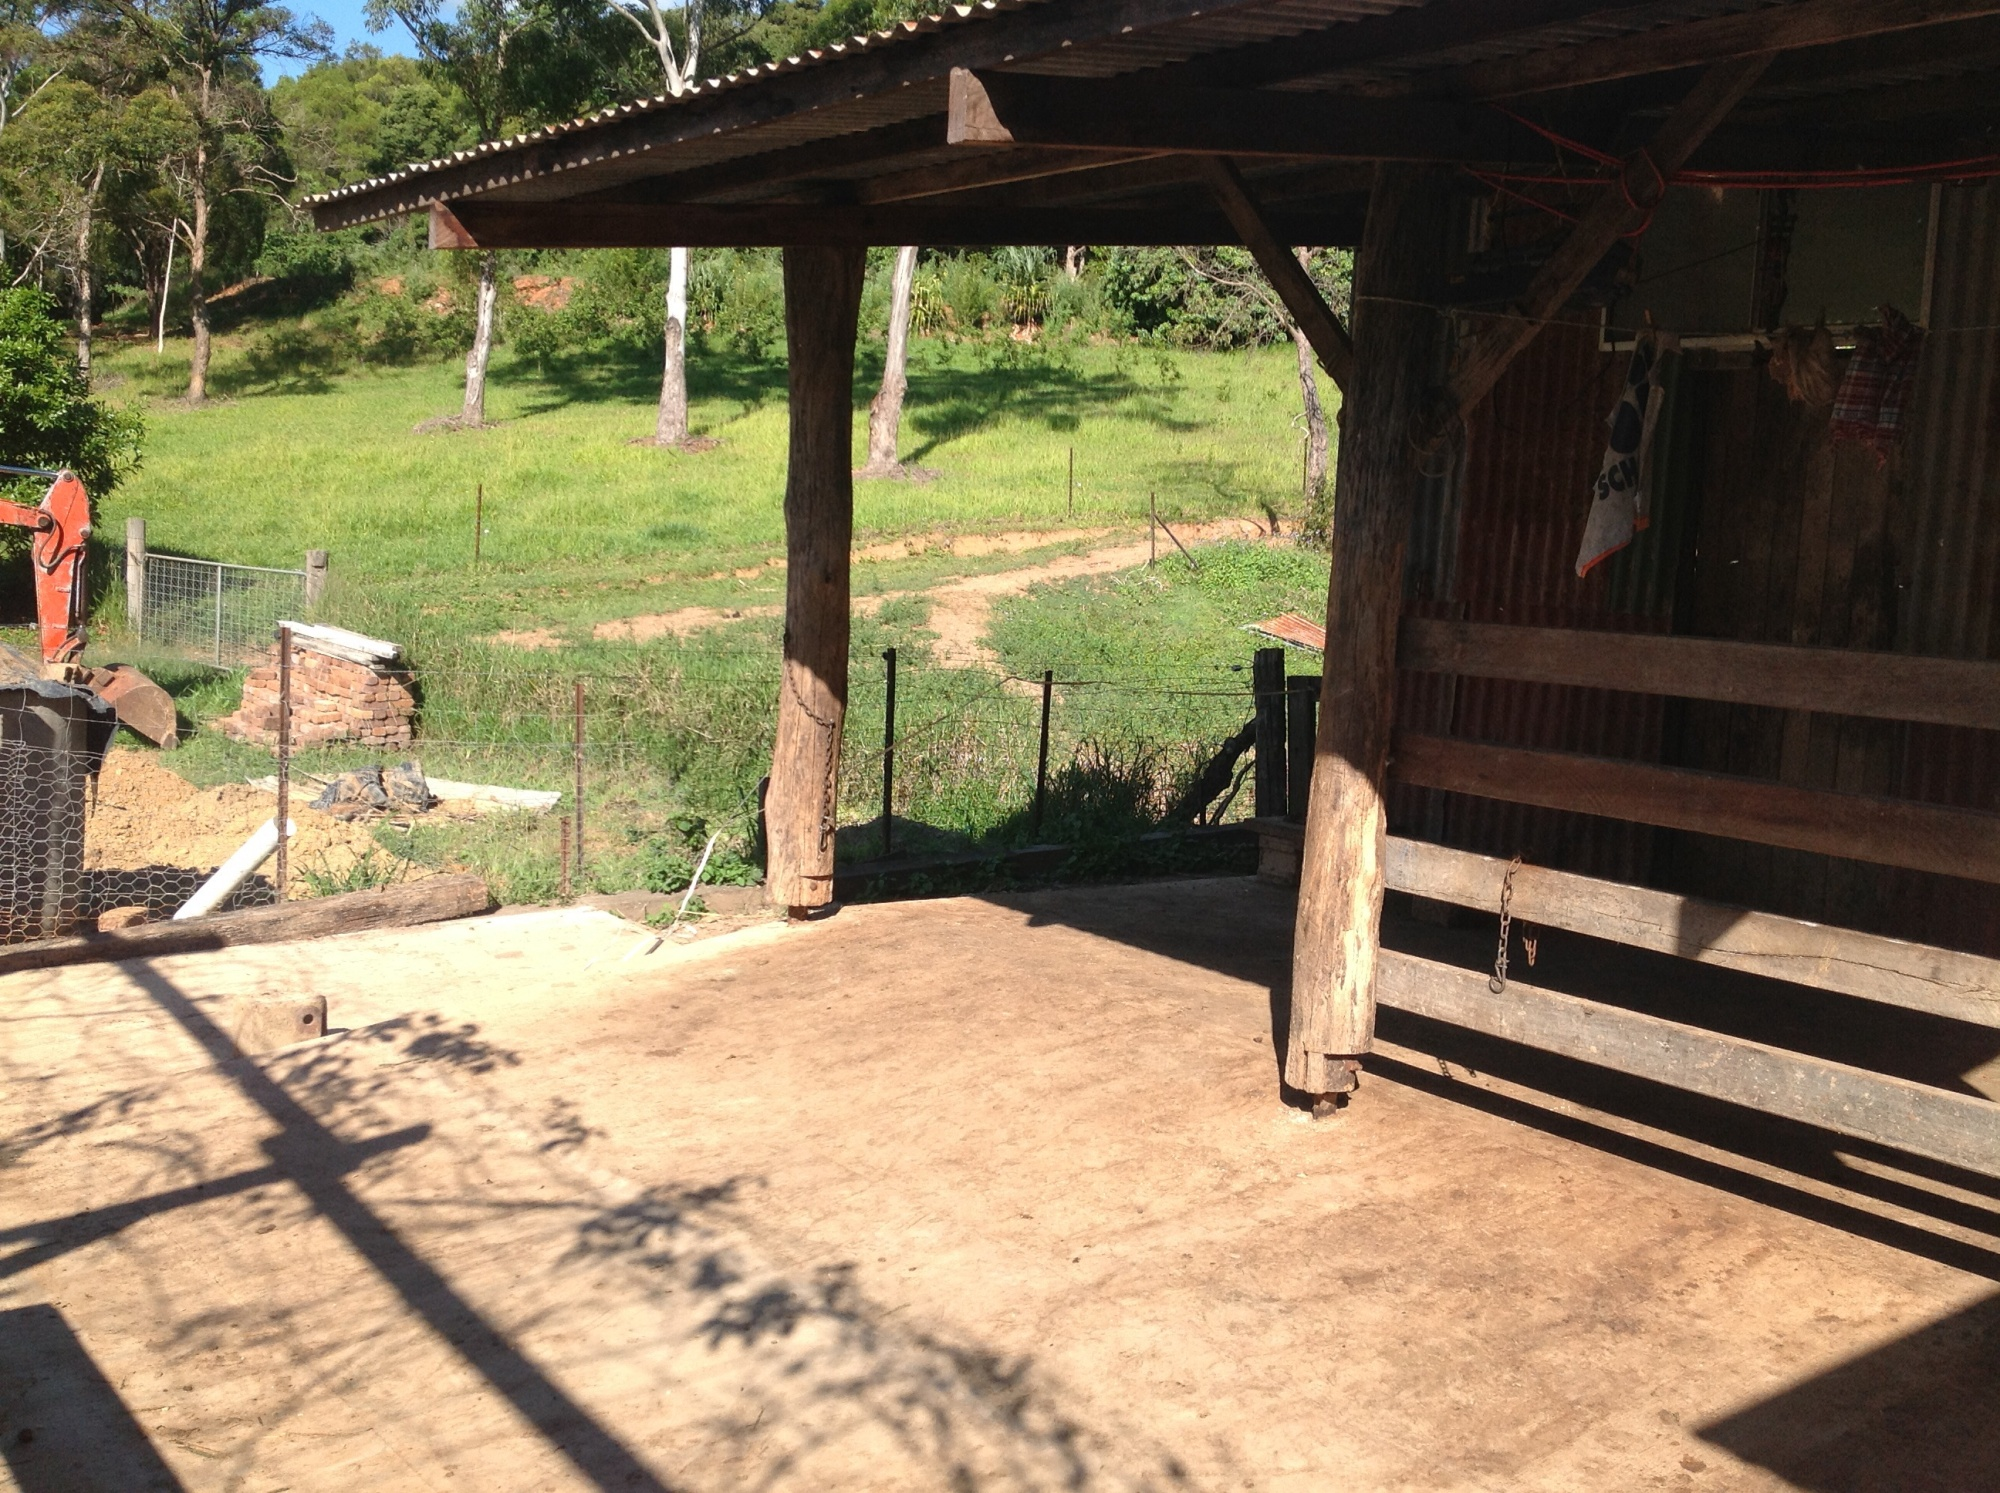 The cattle yard at the Permaculture Research Institute Sunshine Coast holds the cows overnight.